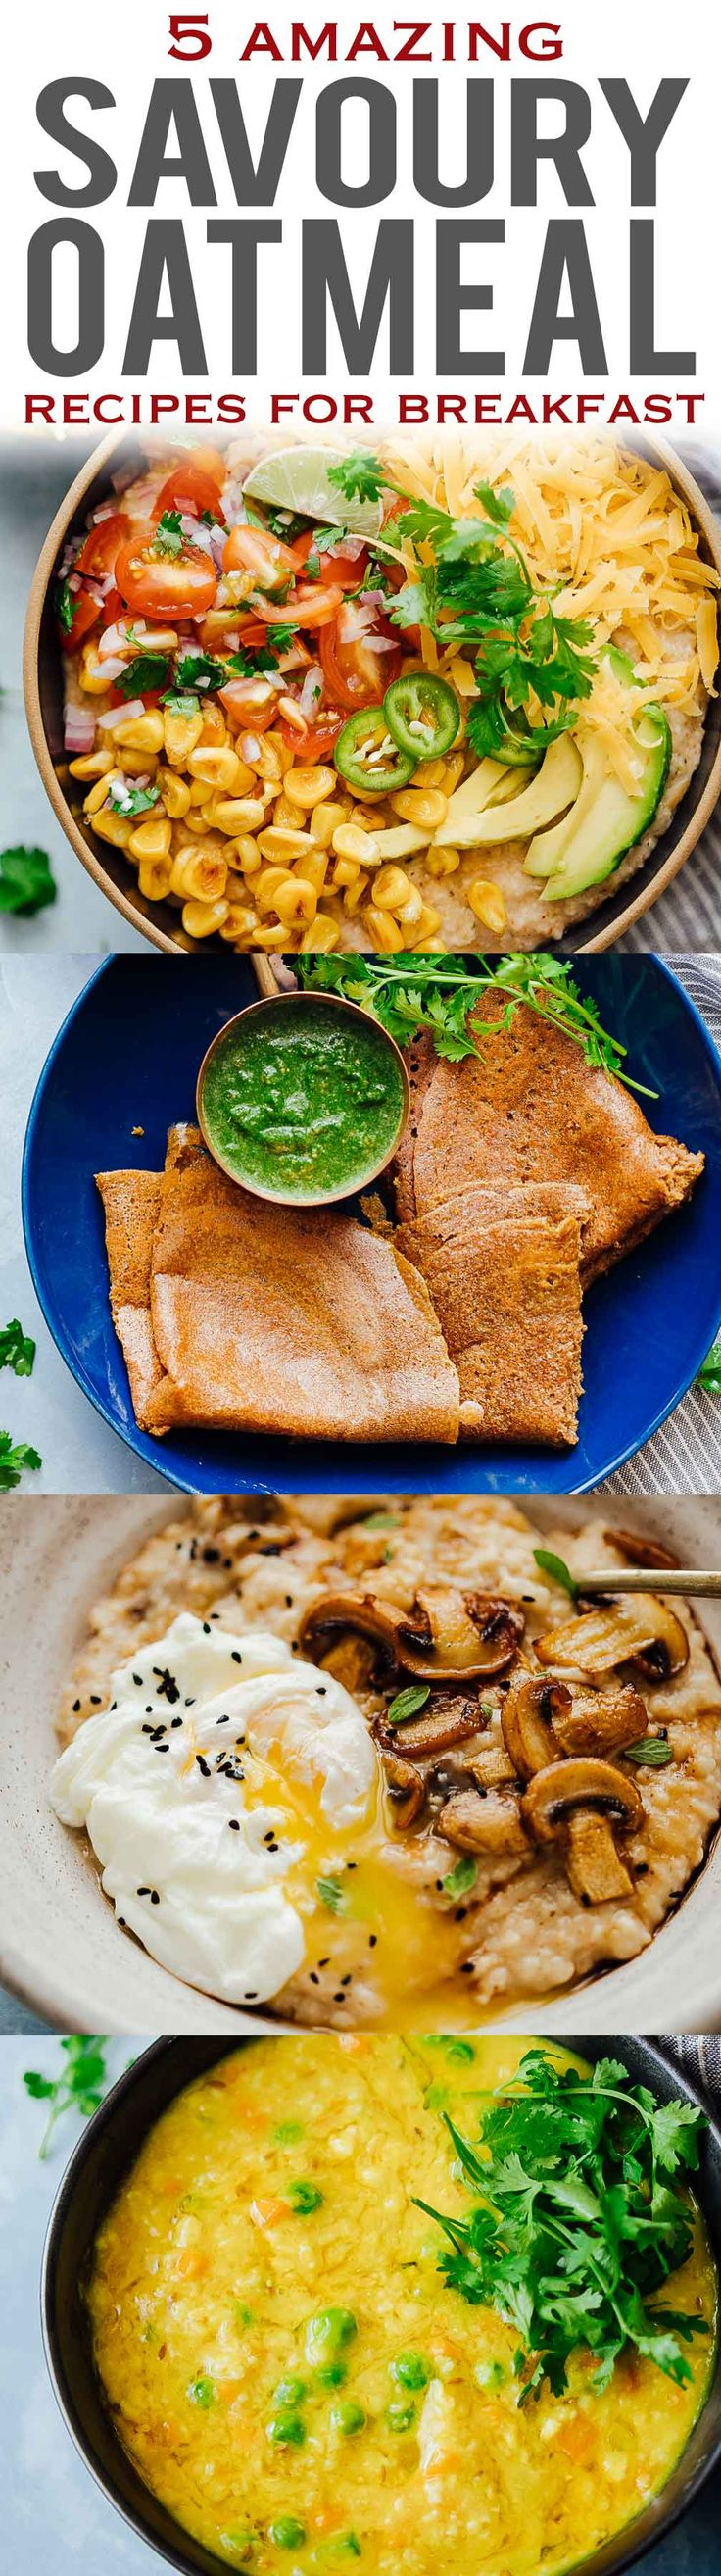 5 HEALTHY SAVORY OATMEAL recipes that you'll love for breakfast!Have you ever tried savory oatmeal before? Skip the sweet stuff and try these delicious recipes - mexican oatmeal, oat pancakes, garlic oats with egg, masala oats khichdi (porridge) and mushroom oats. These recipes are ready in fifteen minutes and perfect for breakfast or lunch! via @my_foodstory